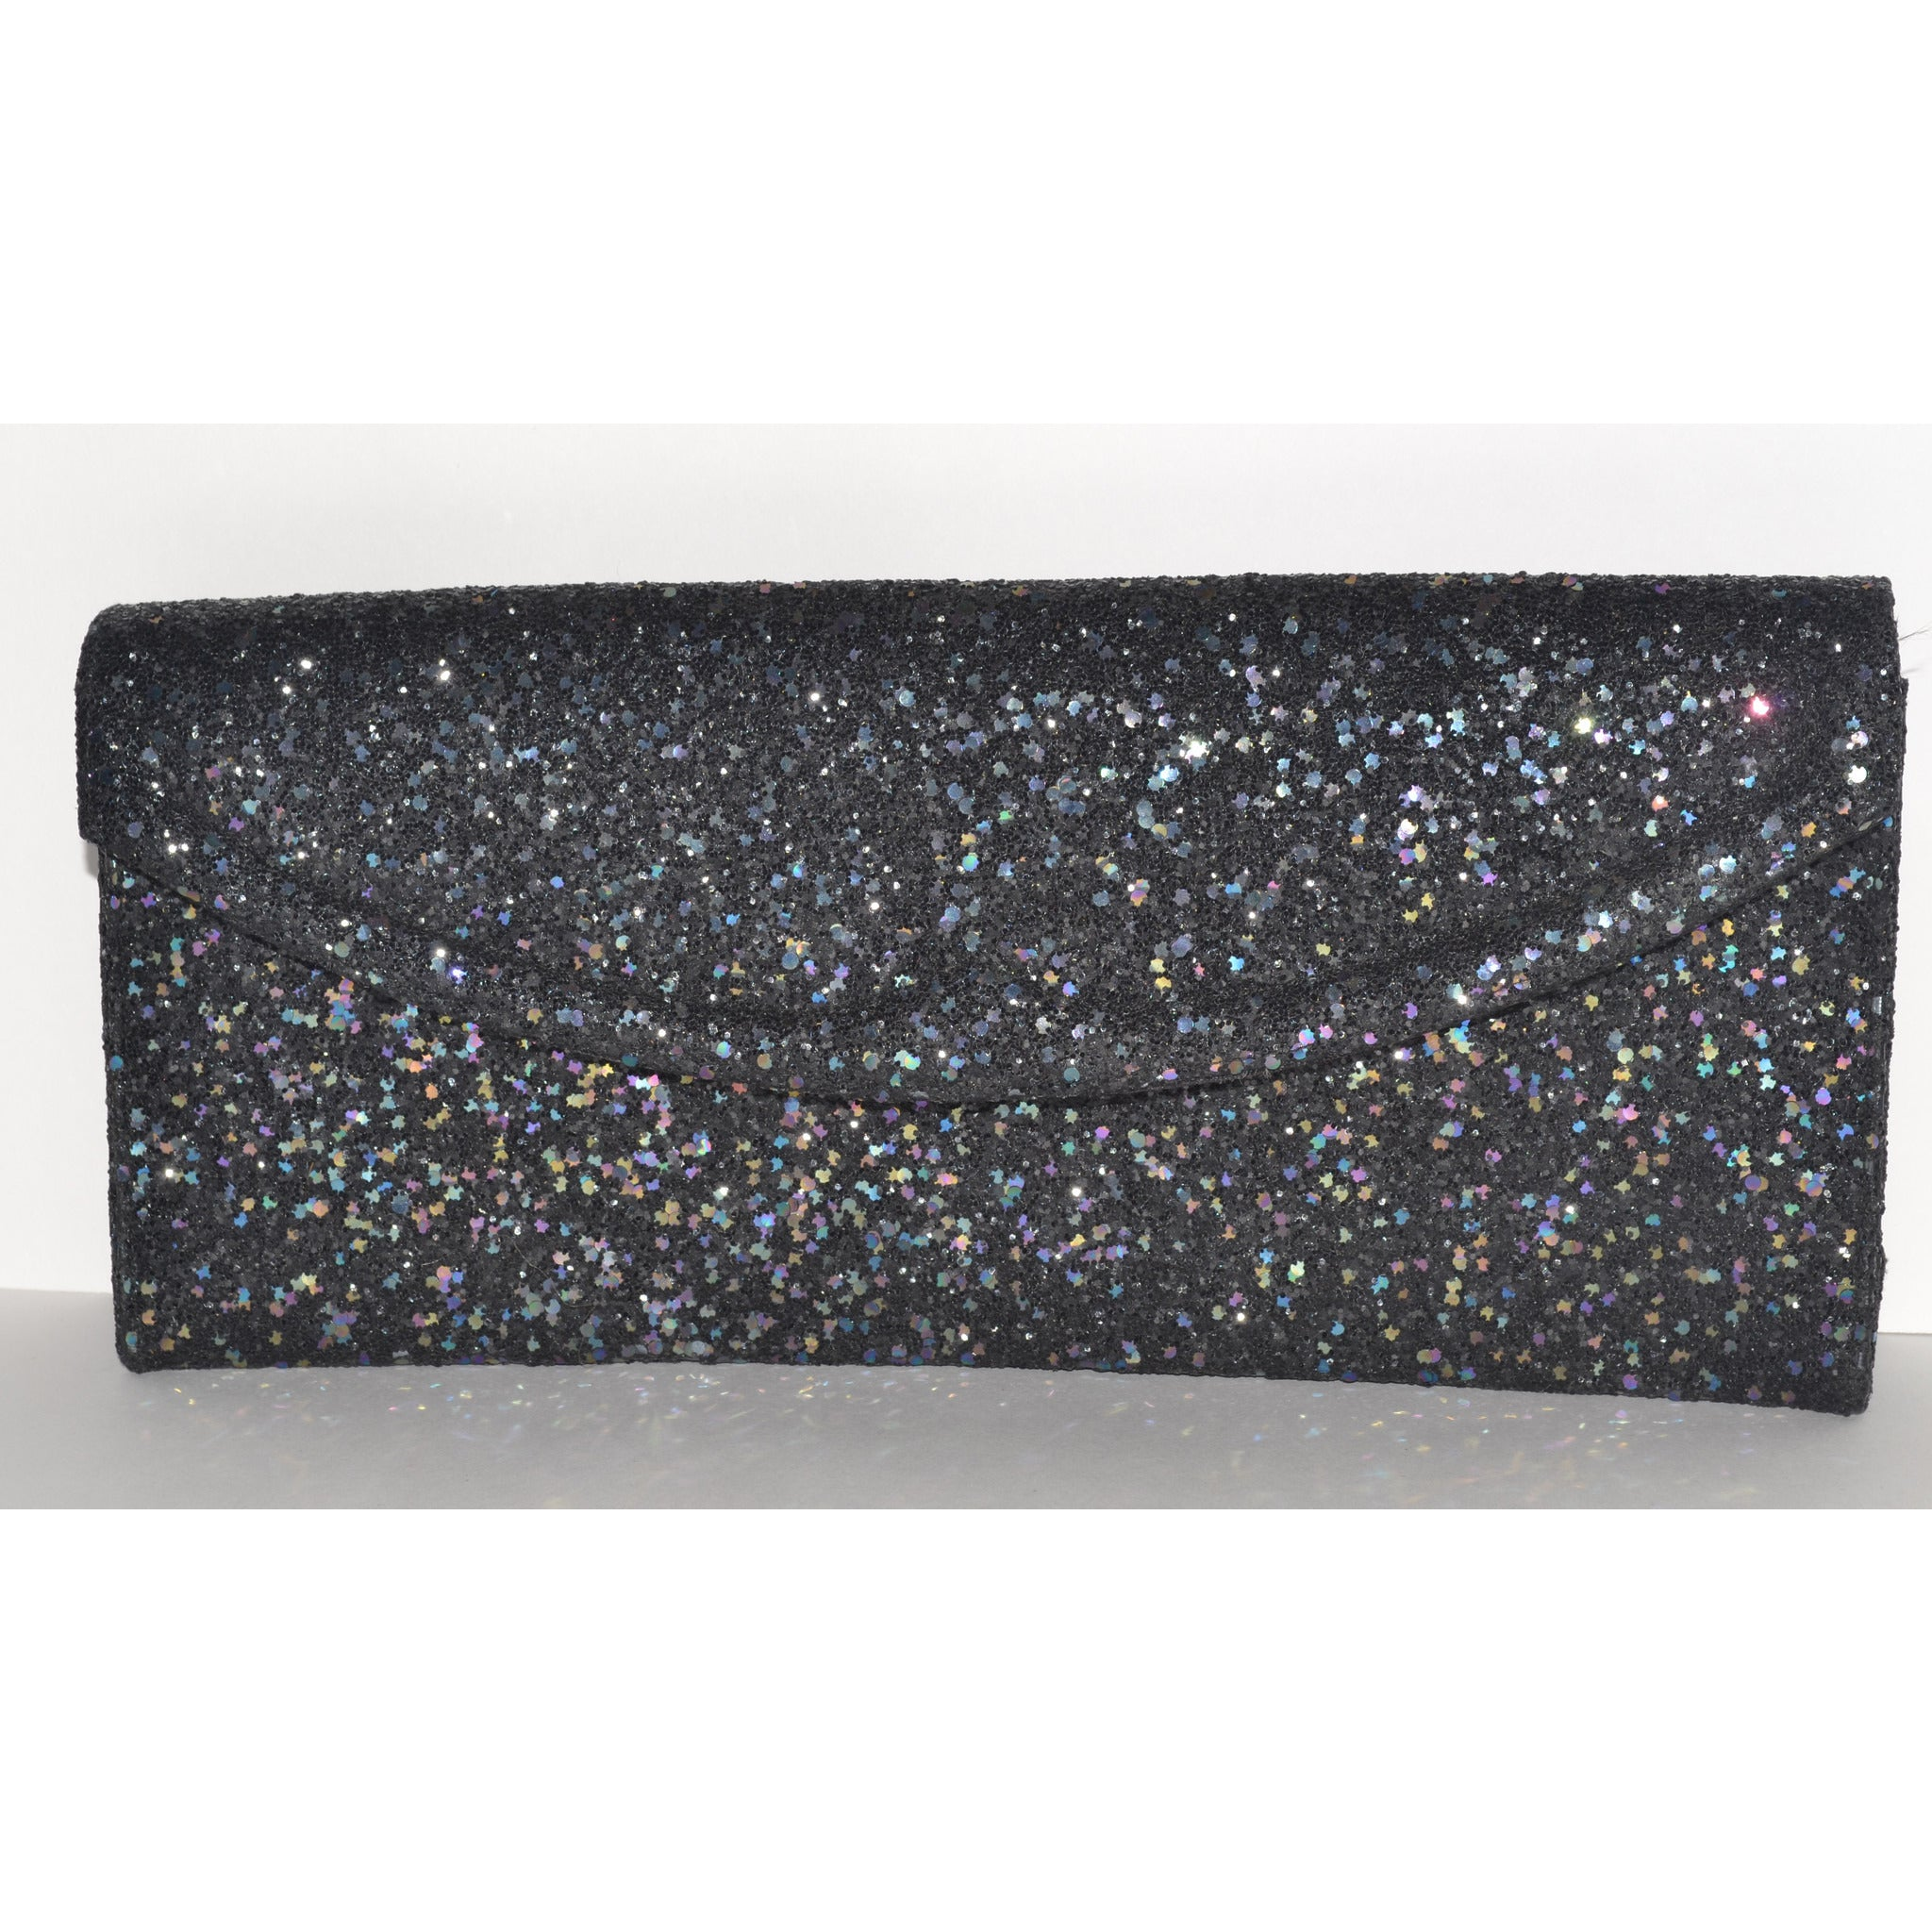 Vintage Sparkling Black Glitter Clutch Purse By Lennox